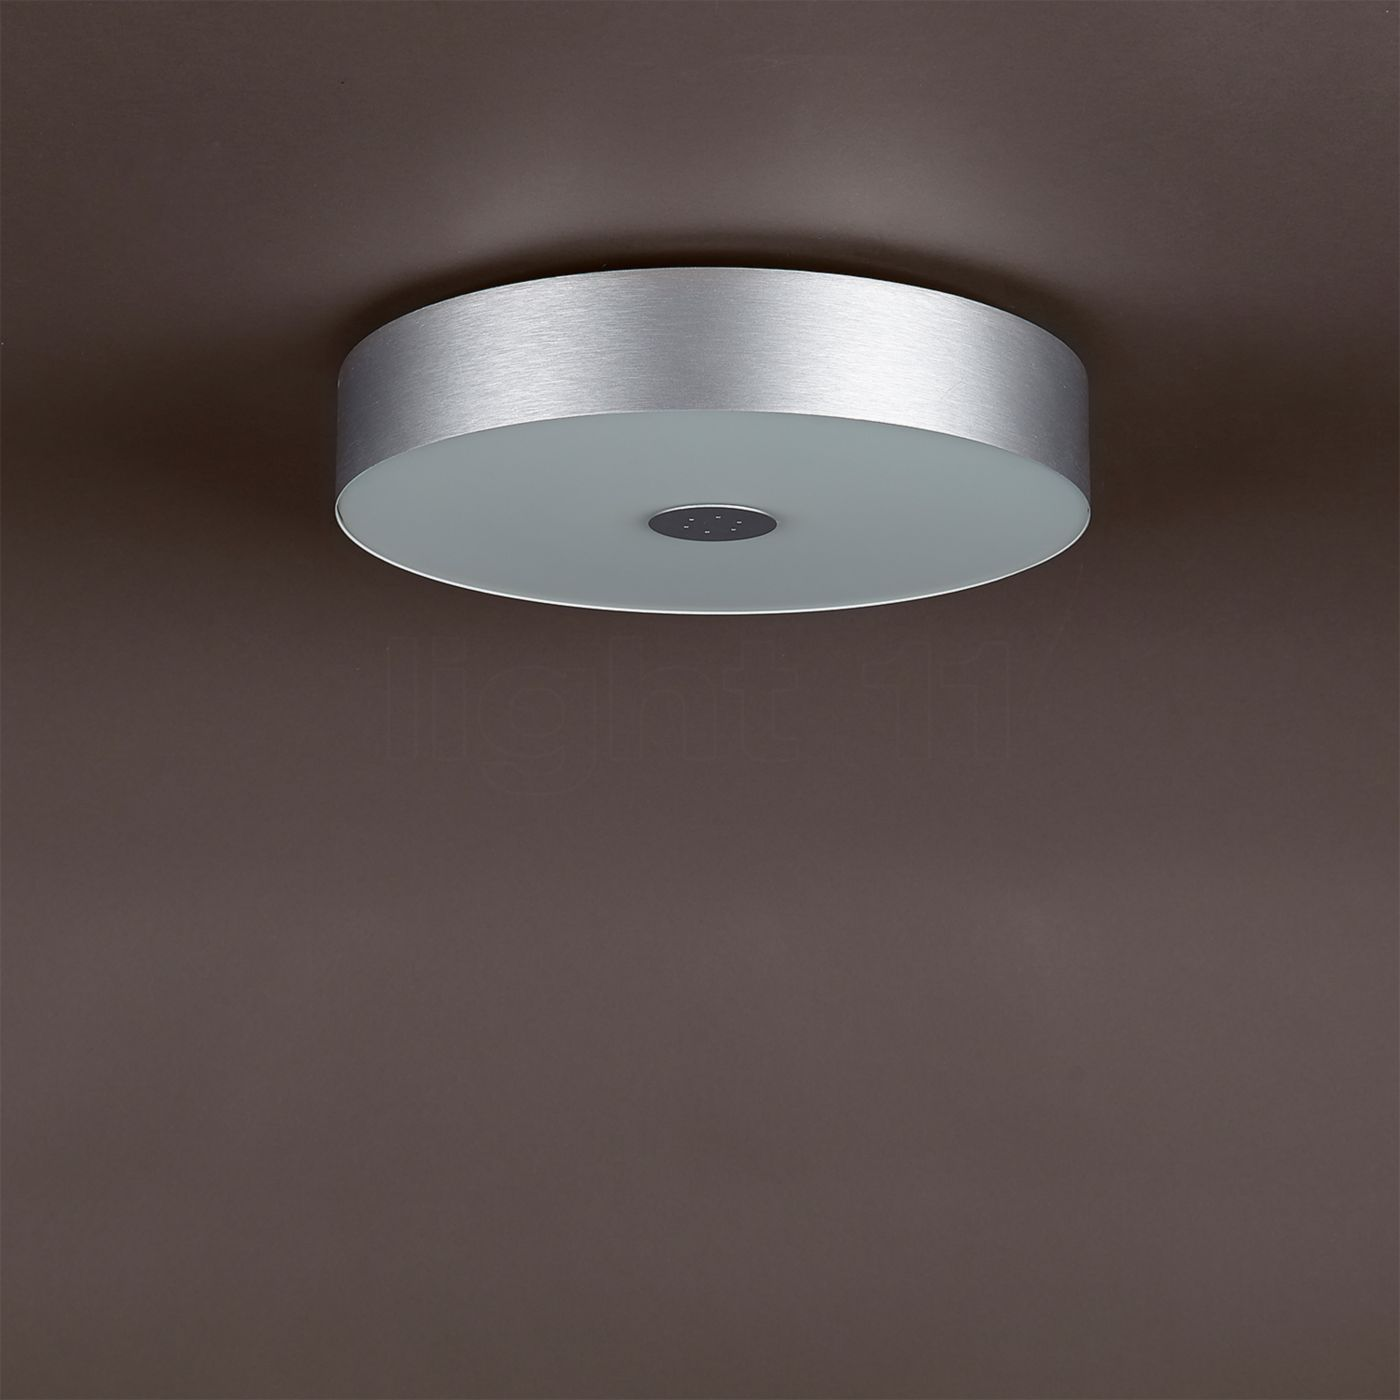 Buy philips ecomoods fair ceiling light at light11 aloadofball